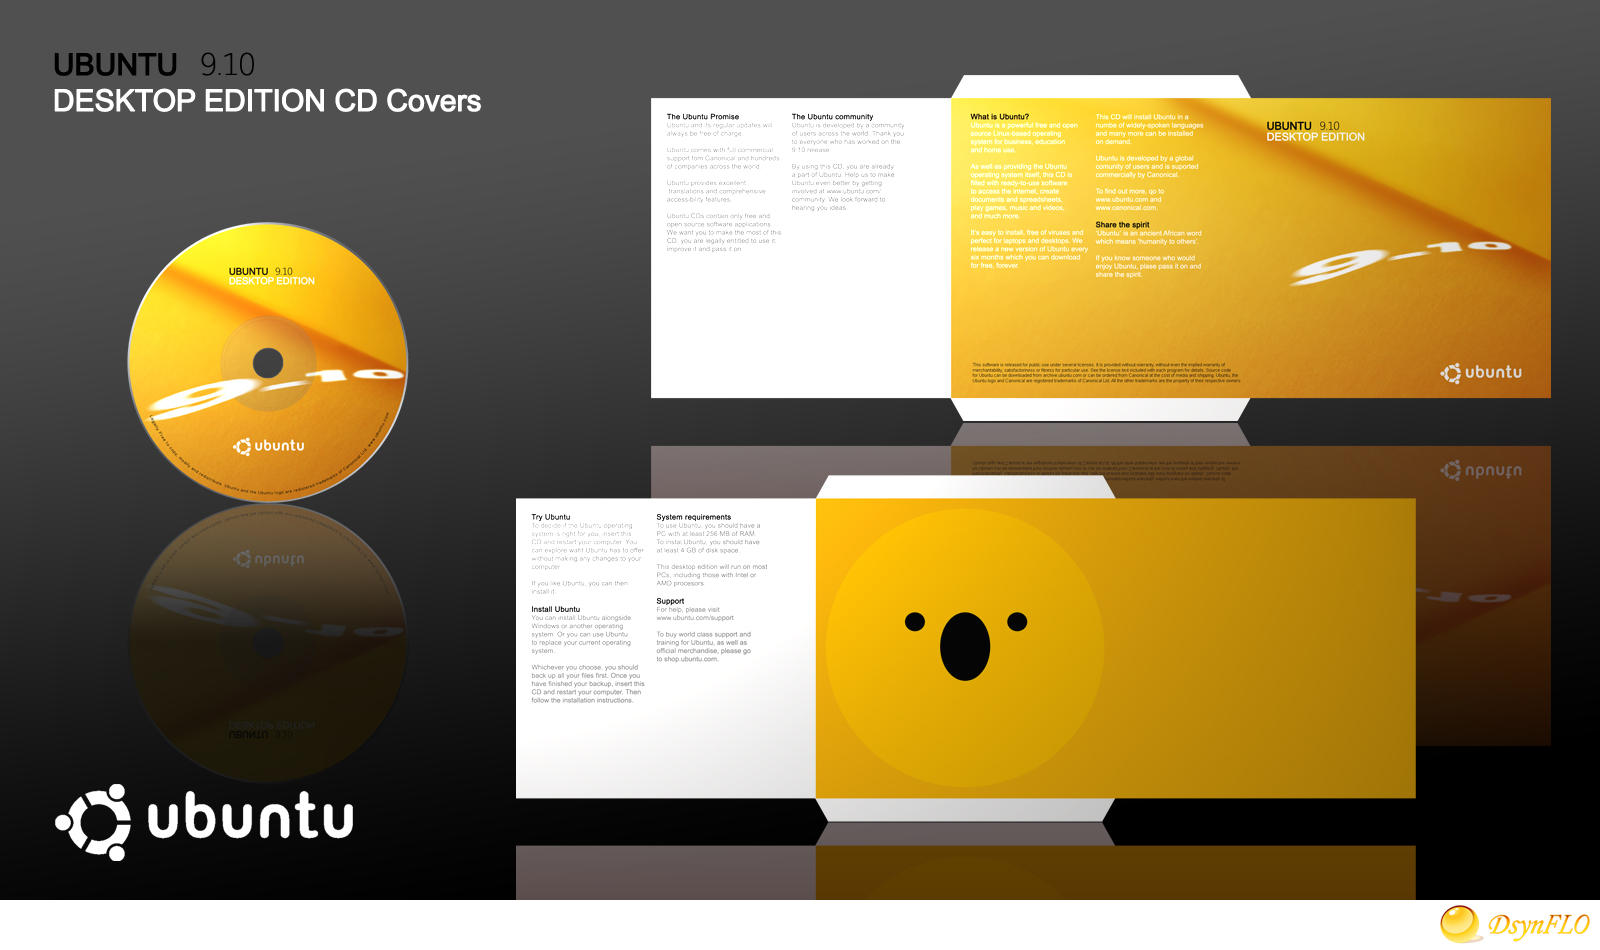 cd case artwork template - ubuntu karmic koala cd c by bharathp666 on deviantart